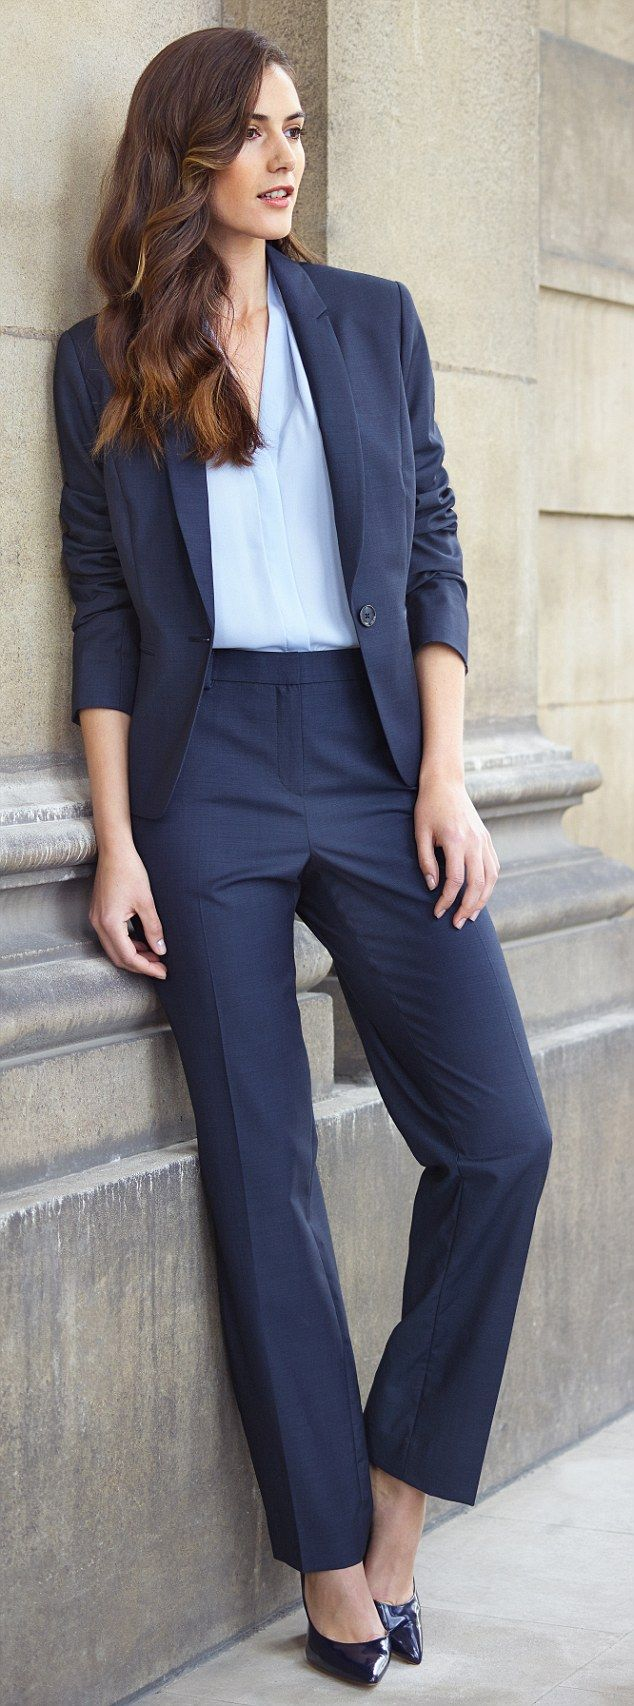 1000  images about suits on Pinterest | White suits, Pants and